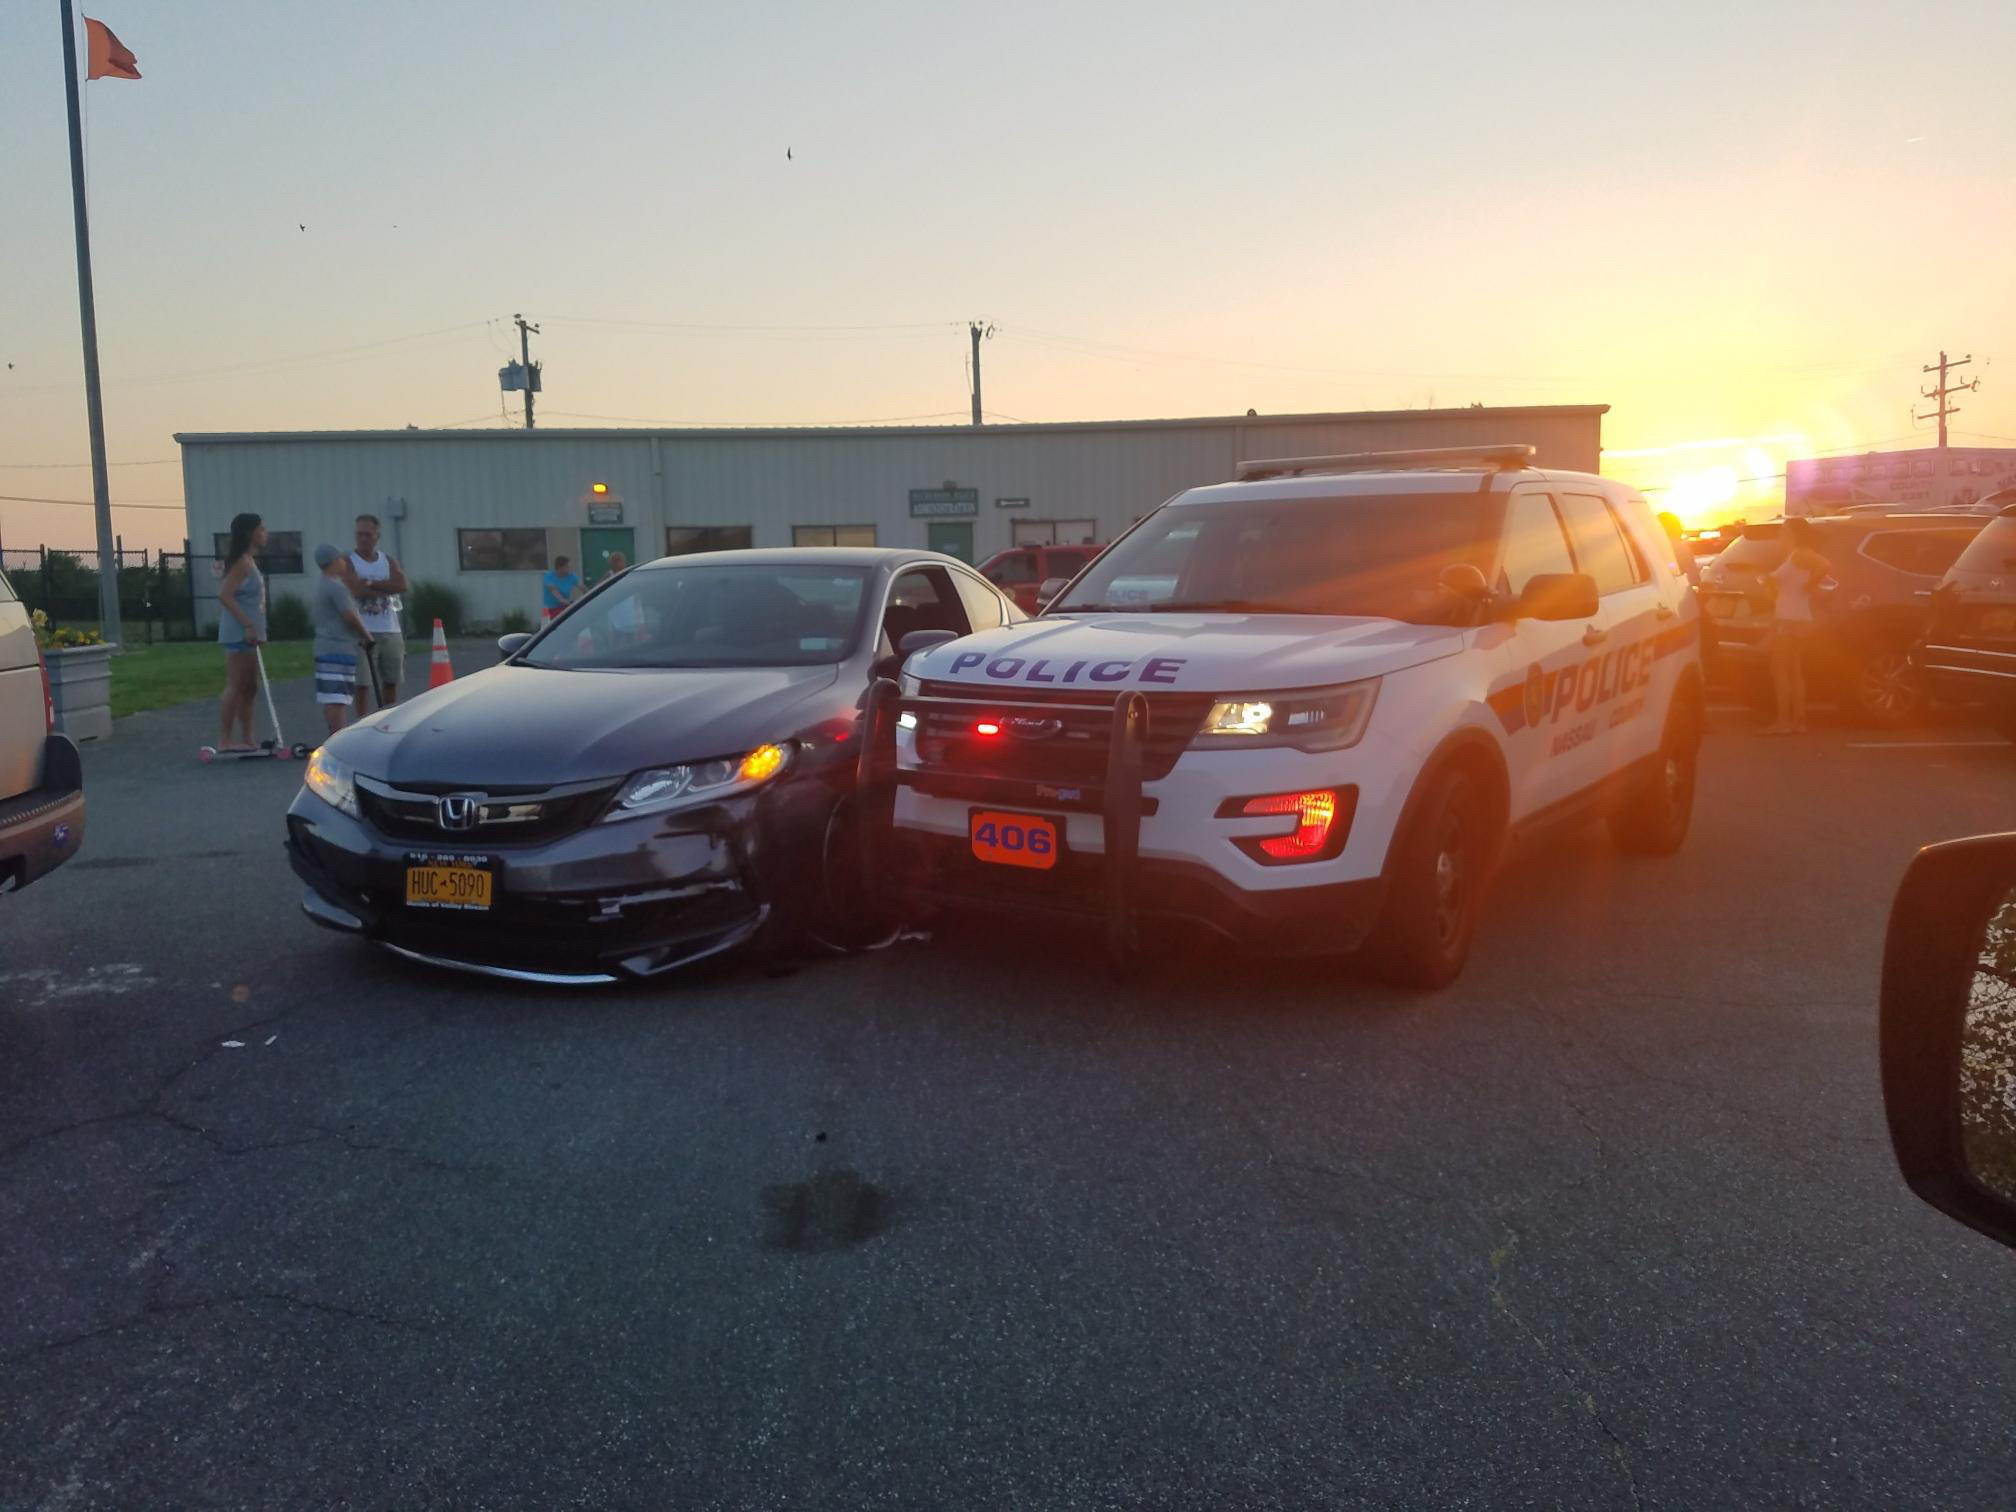 Nassau County Police arrested a Queens woman in Lido Beach on Sunday after she drove into a police cruiser and injured two officers.